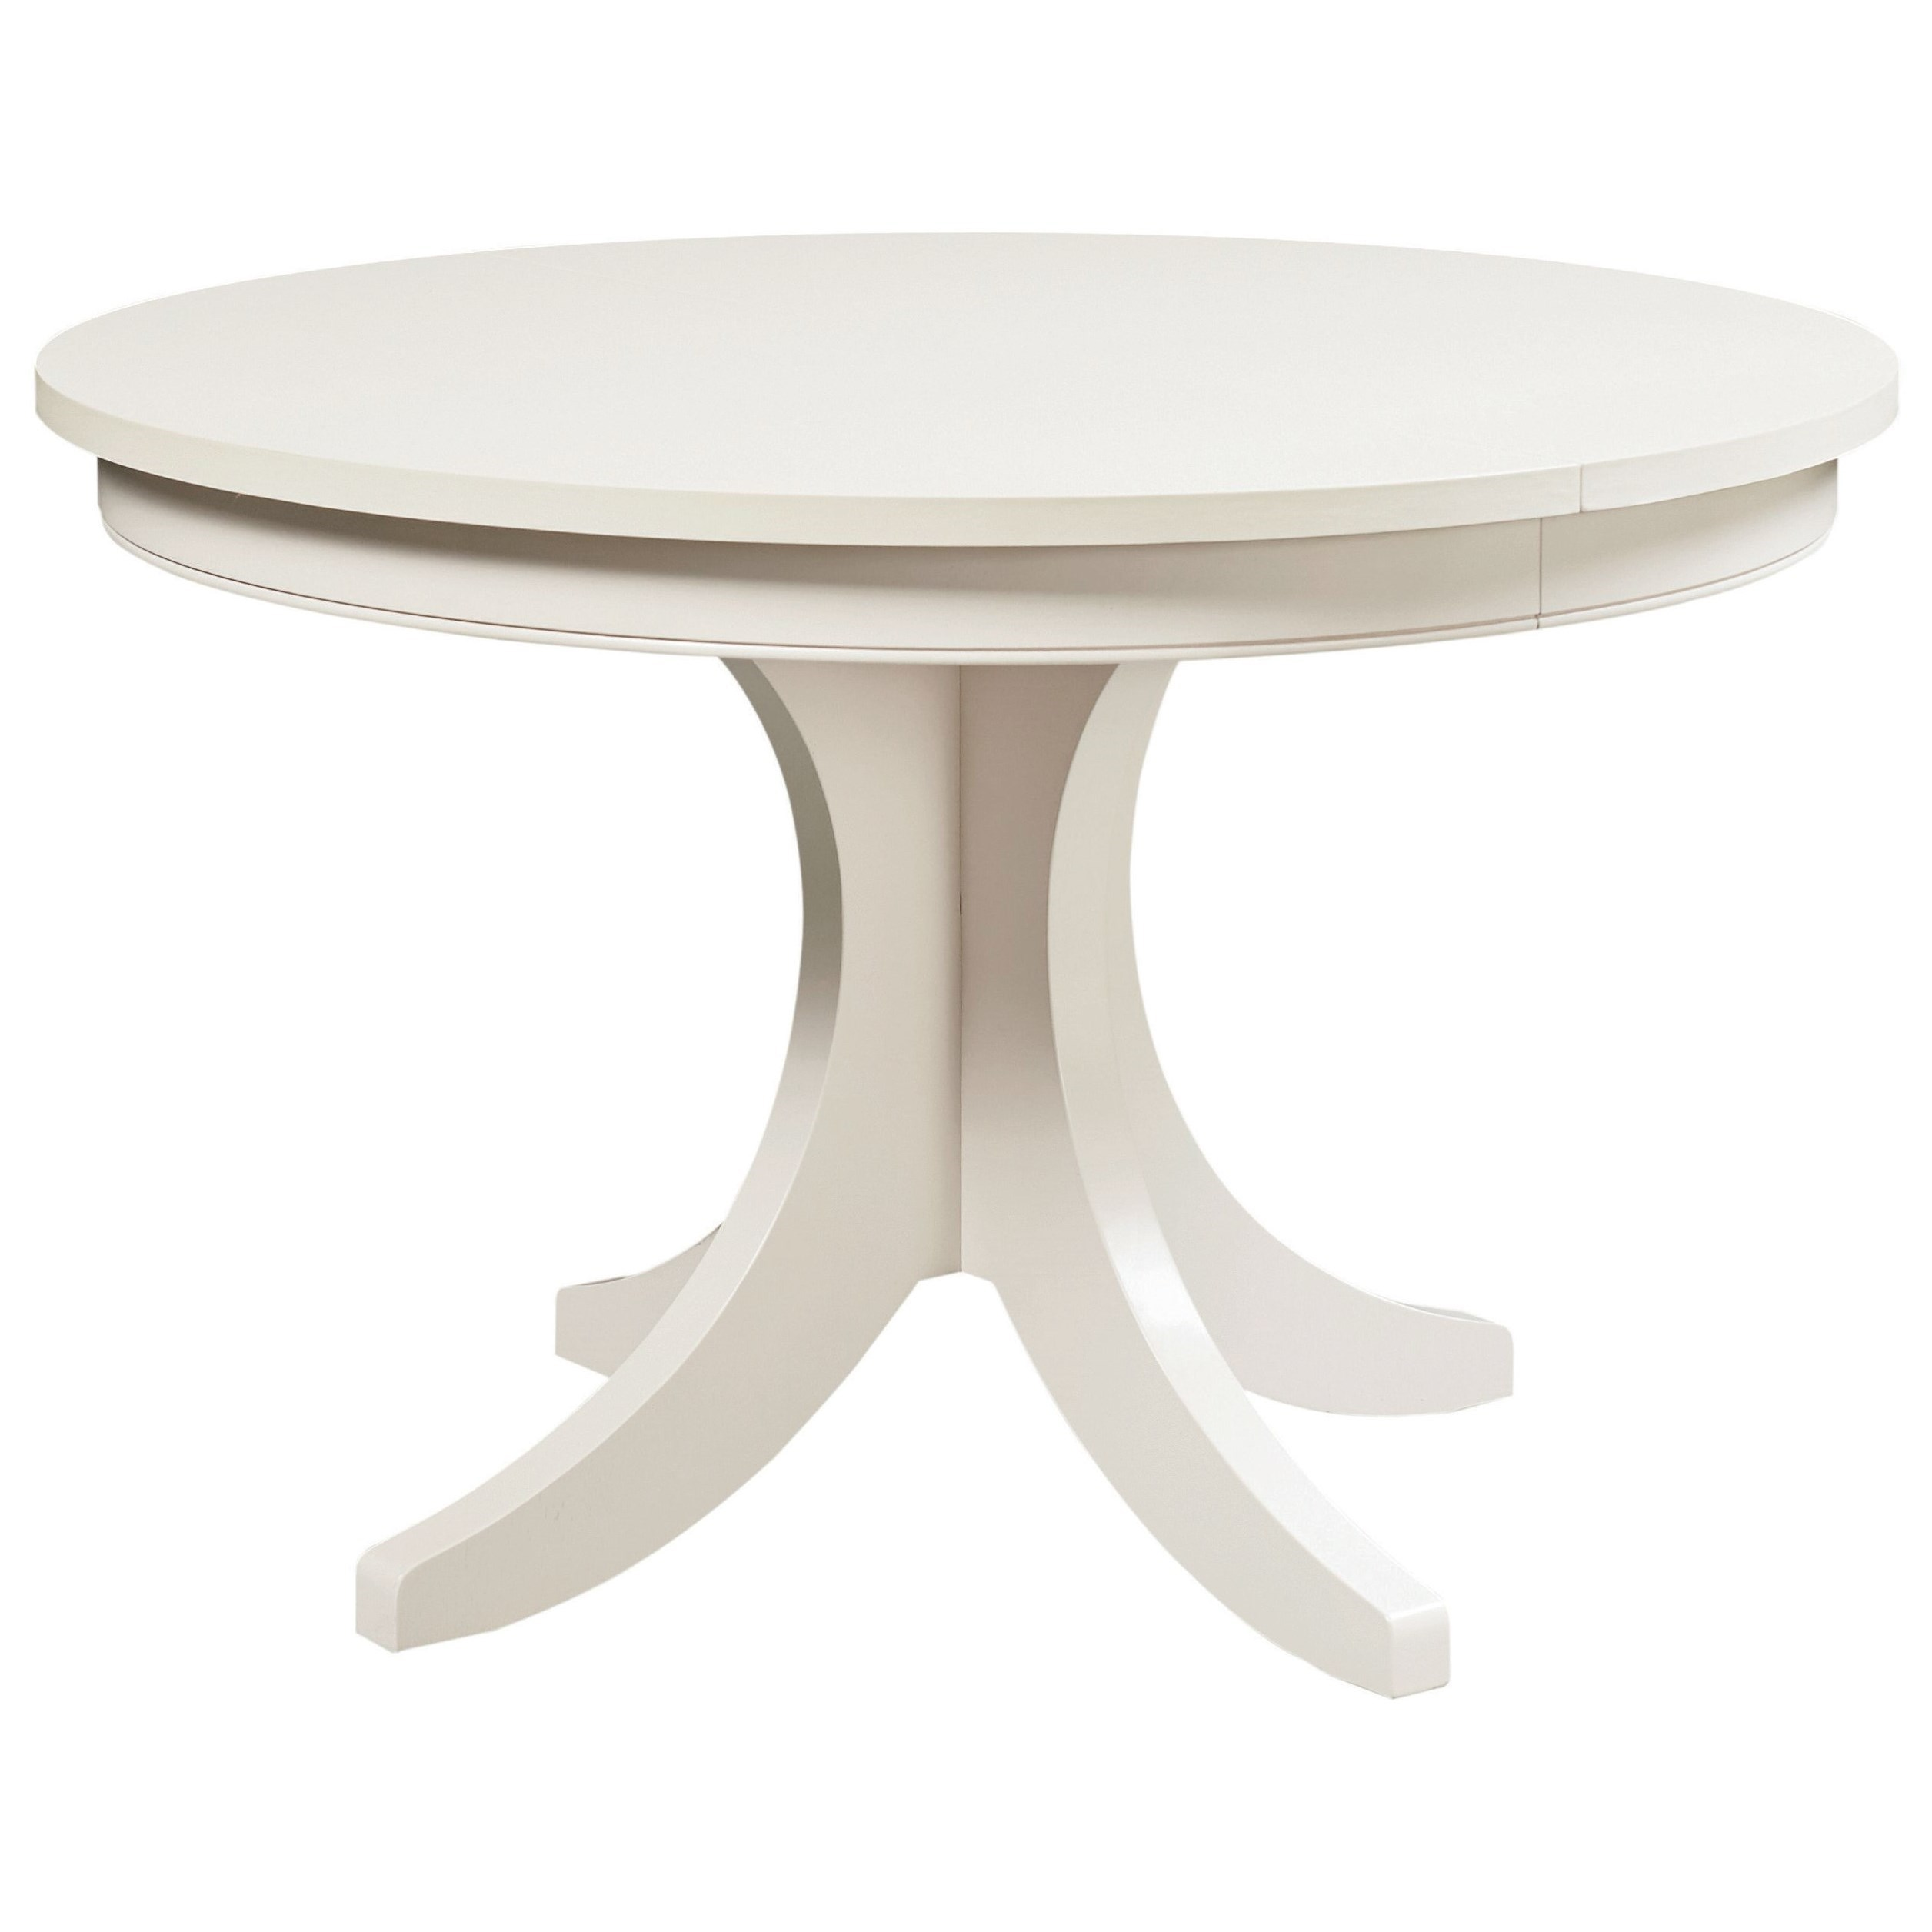 Custom Dining Customizable Round Pedestal Table by Bassett at Furniture Superstore - Rochester, MN